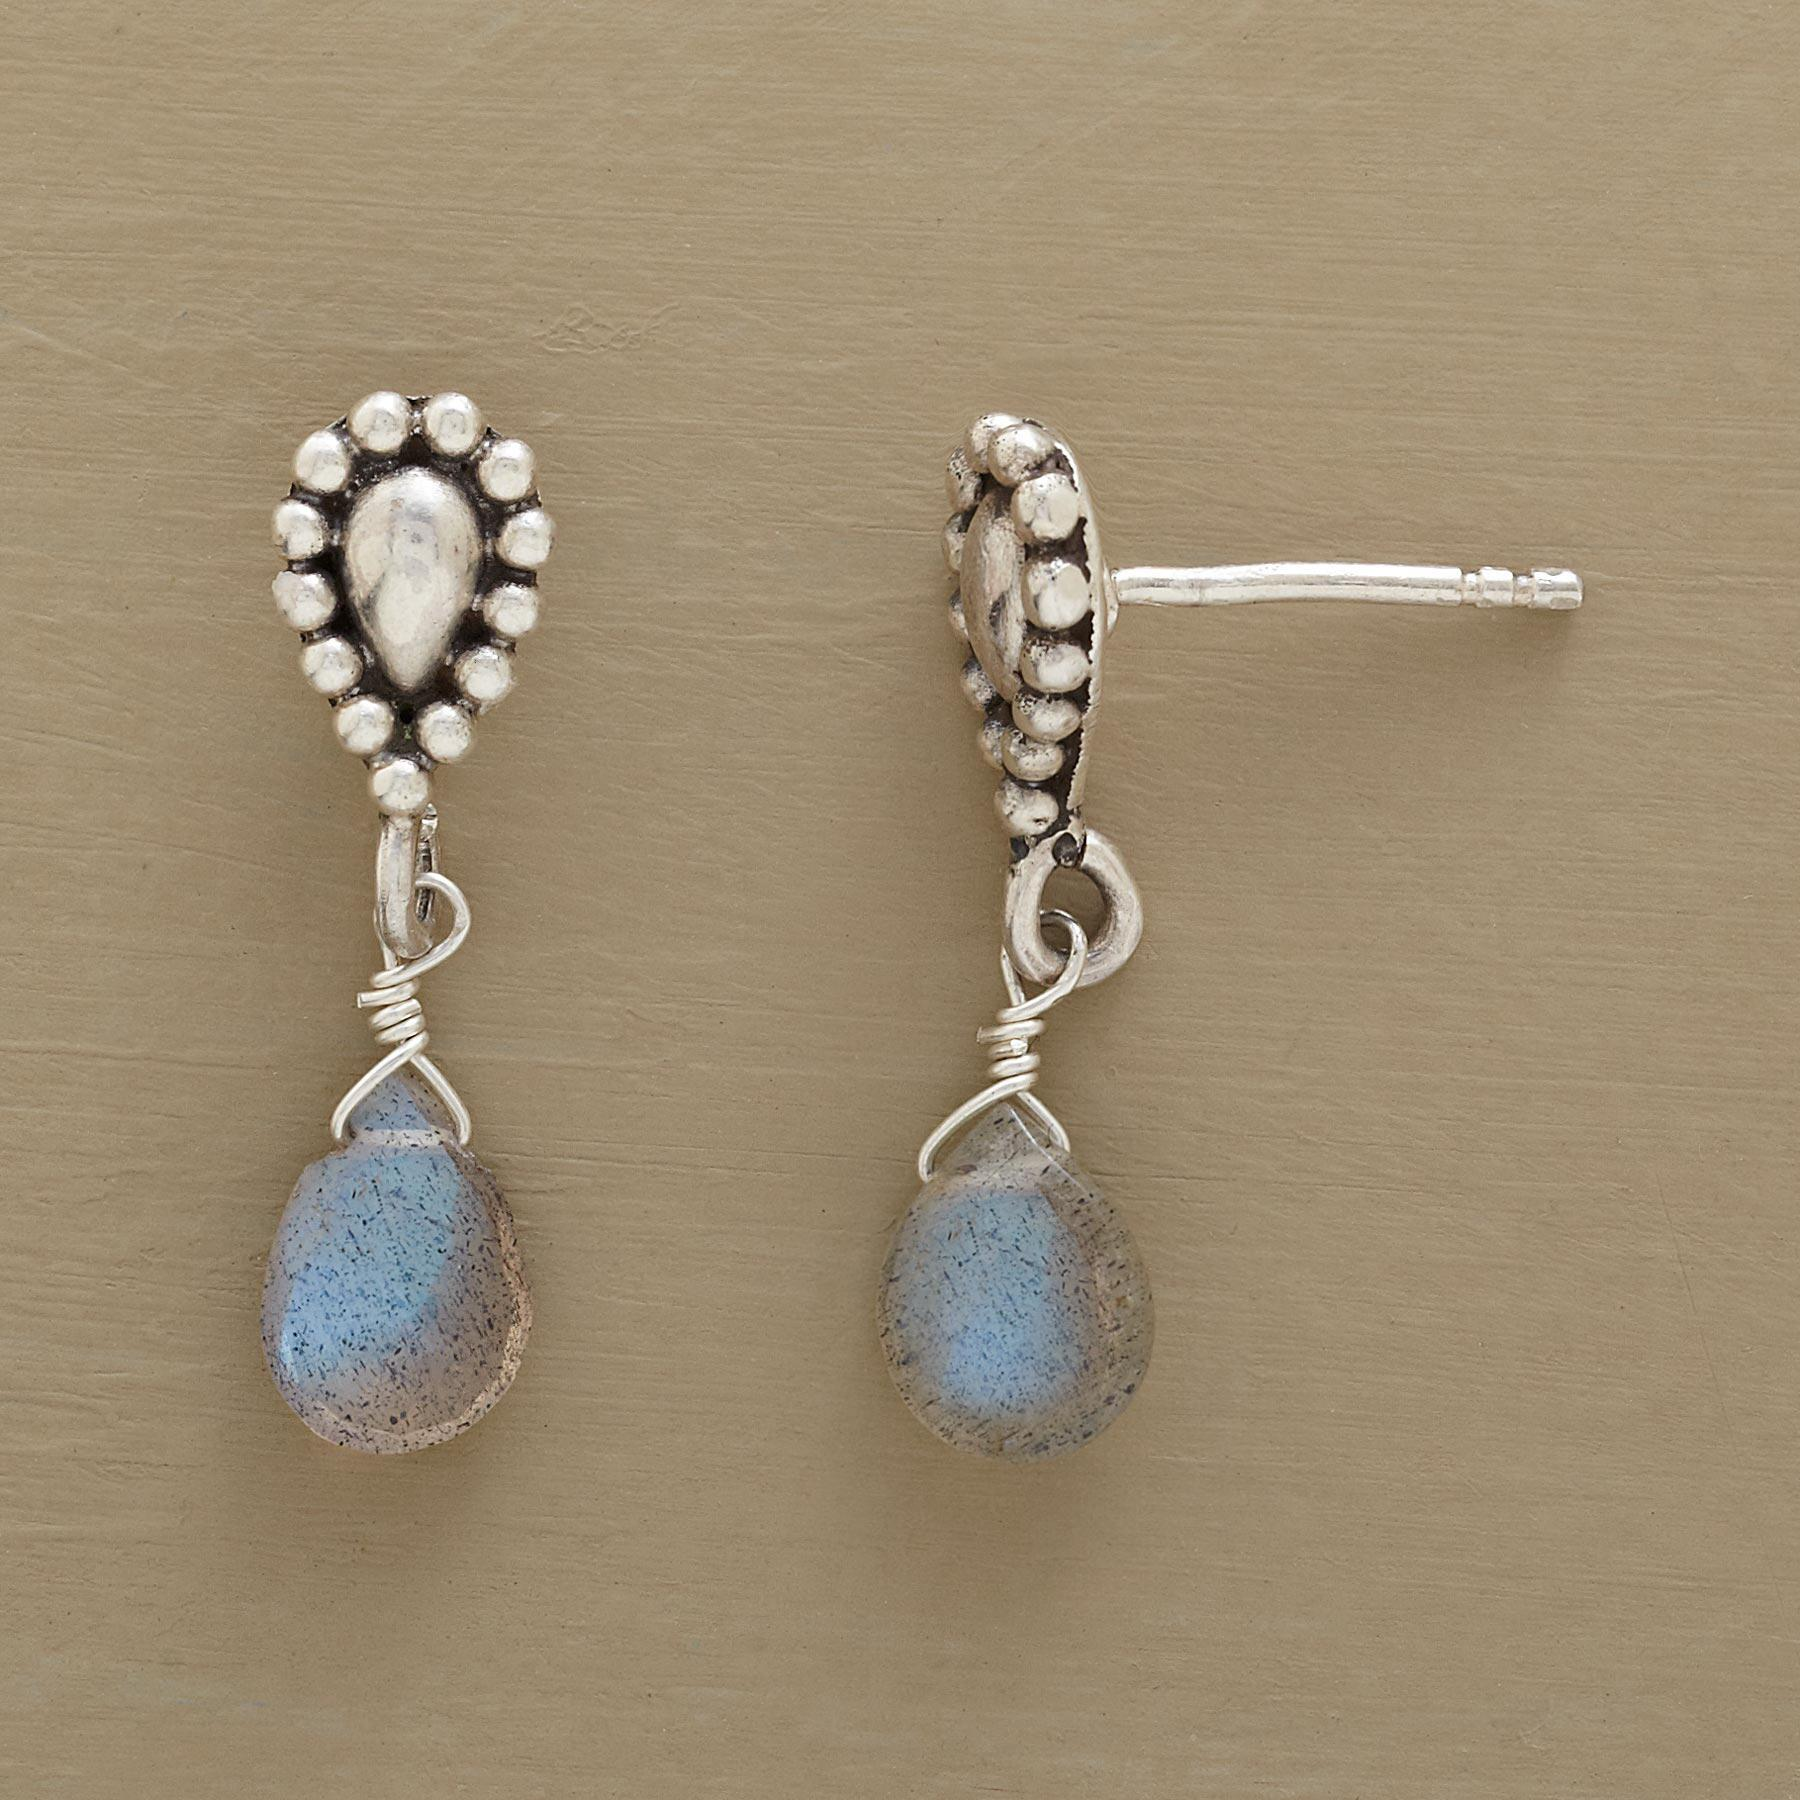 REFLECTIONS EARRINGS : View 1